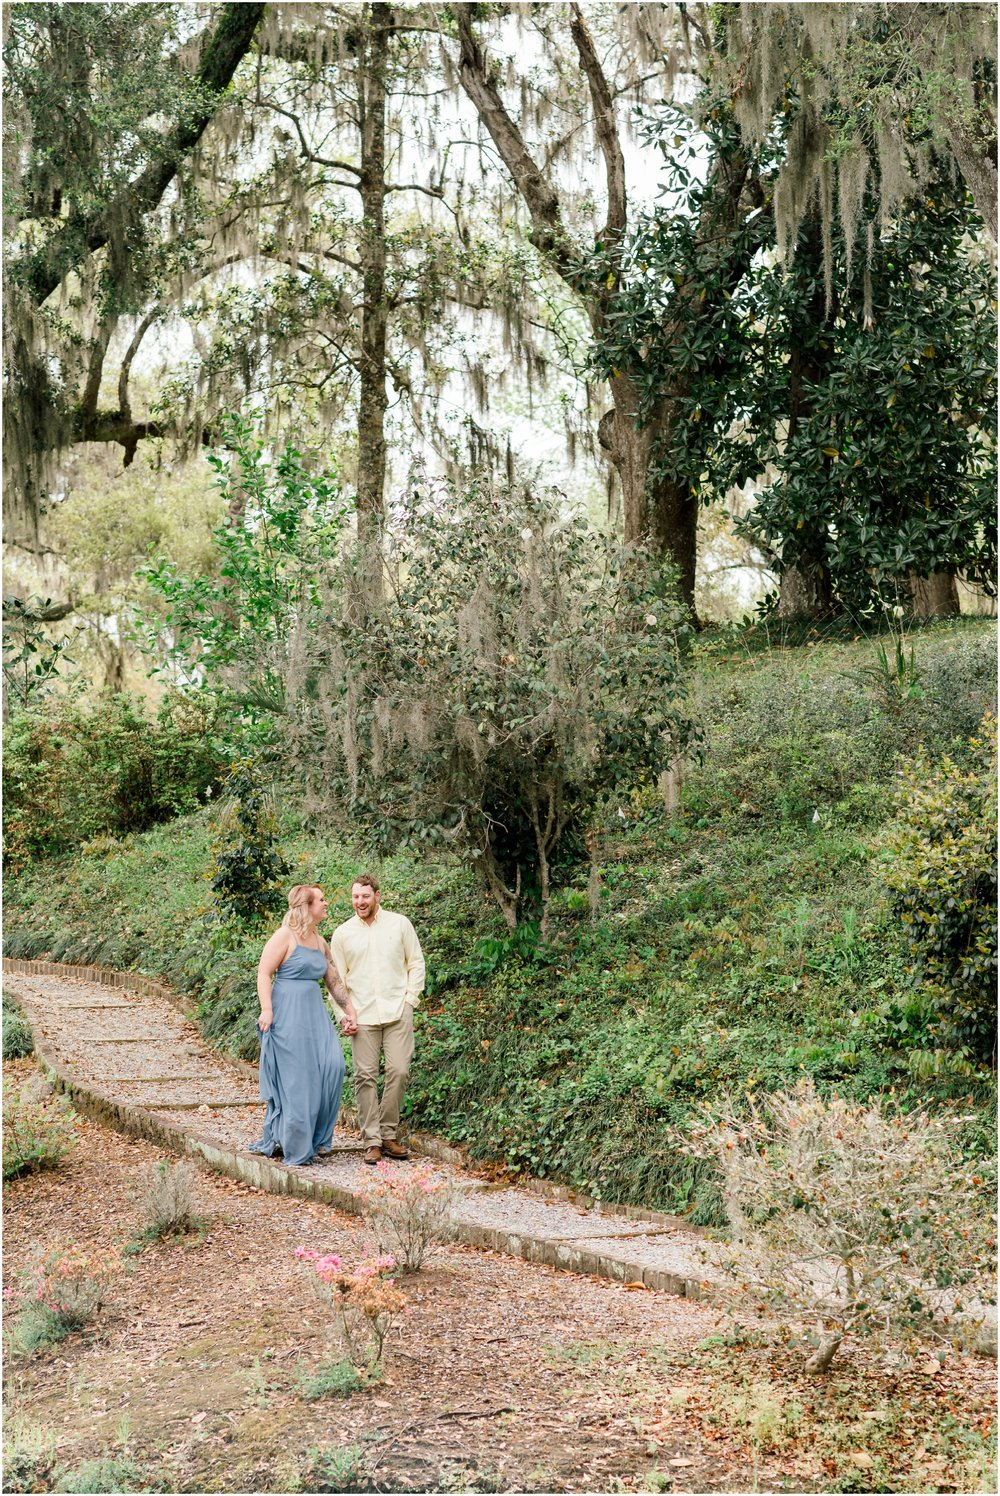 Mepkin-Abbey-Moncks-Corner-South-Carolina-Engagement-Session-Photos_0022.jpg